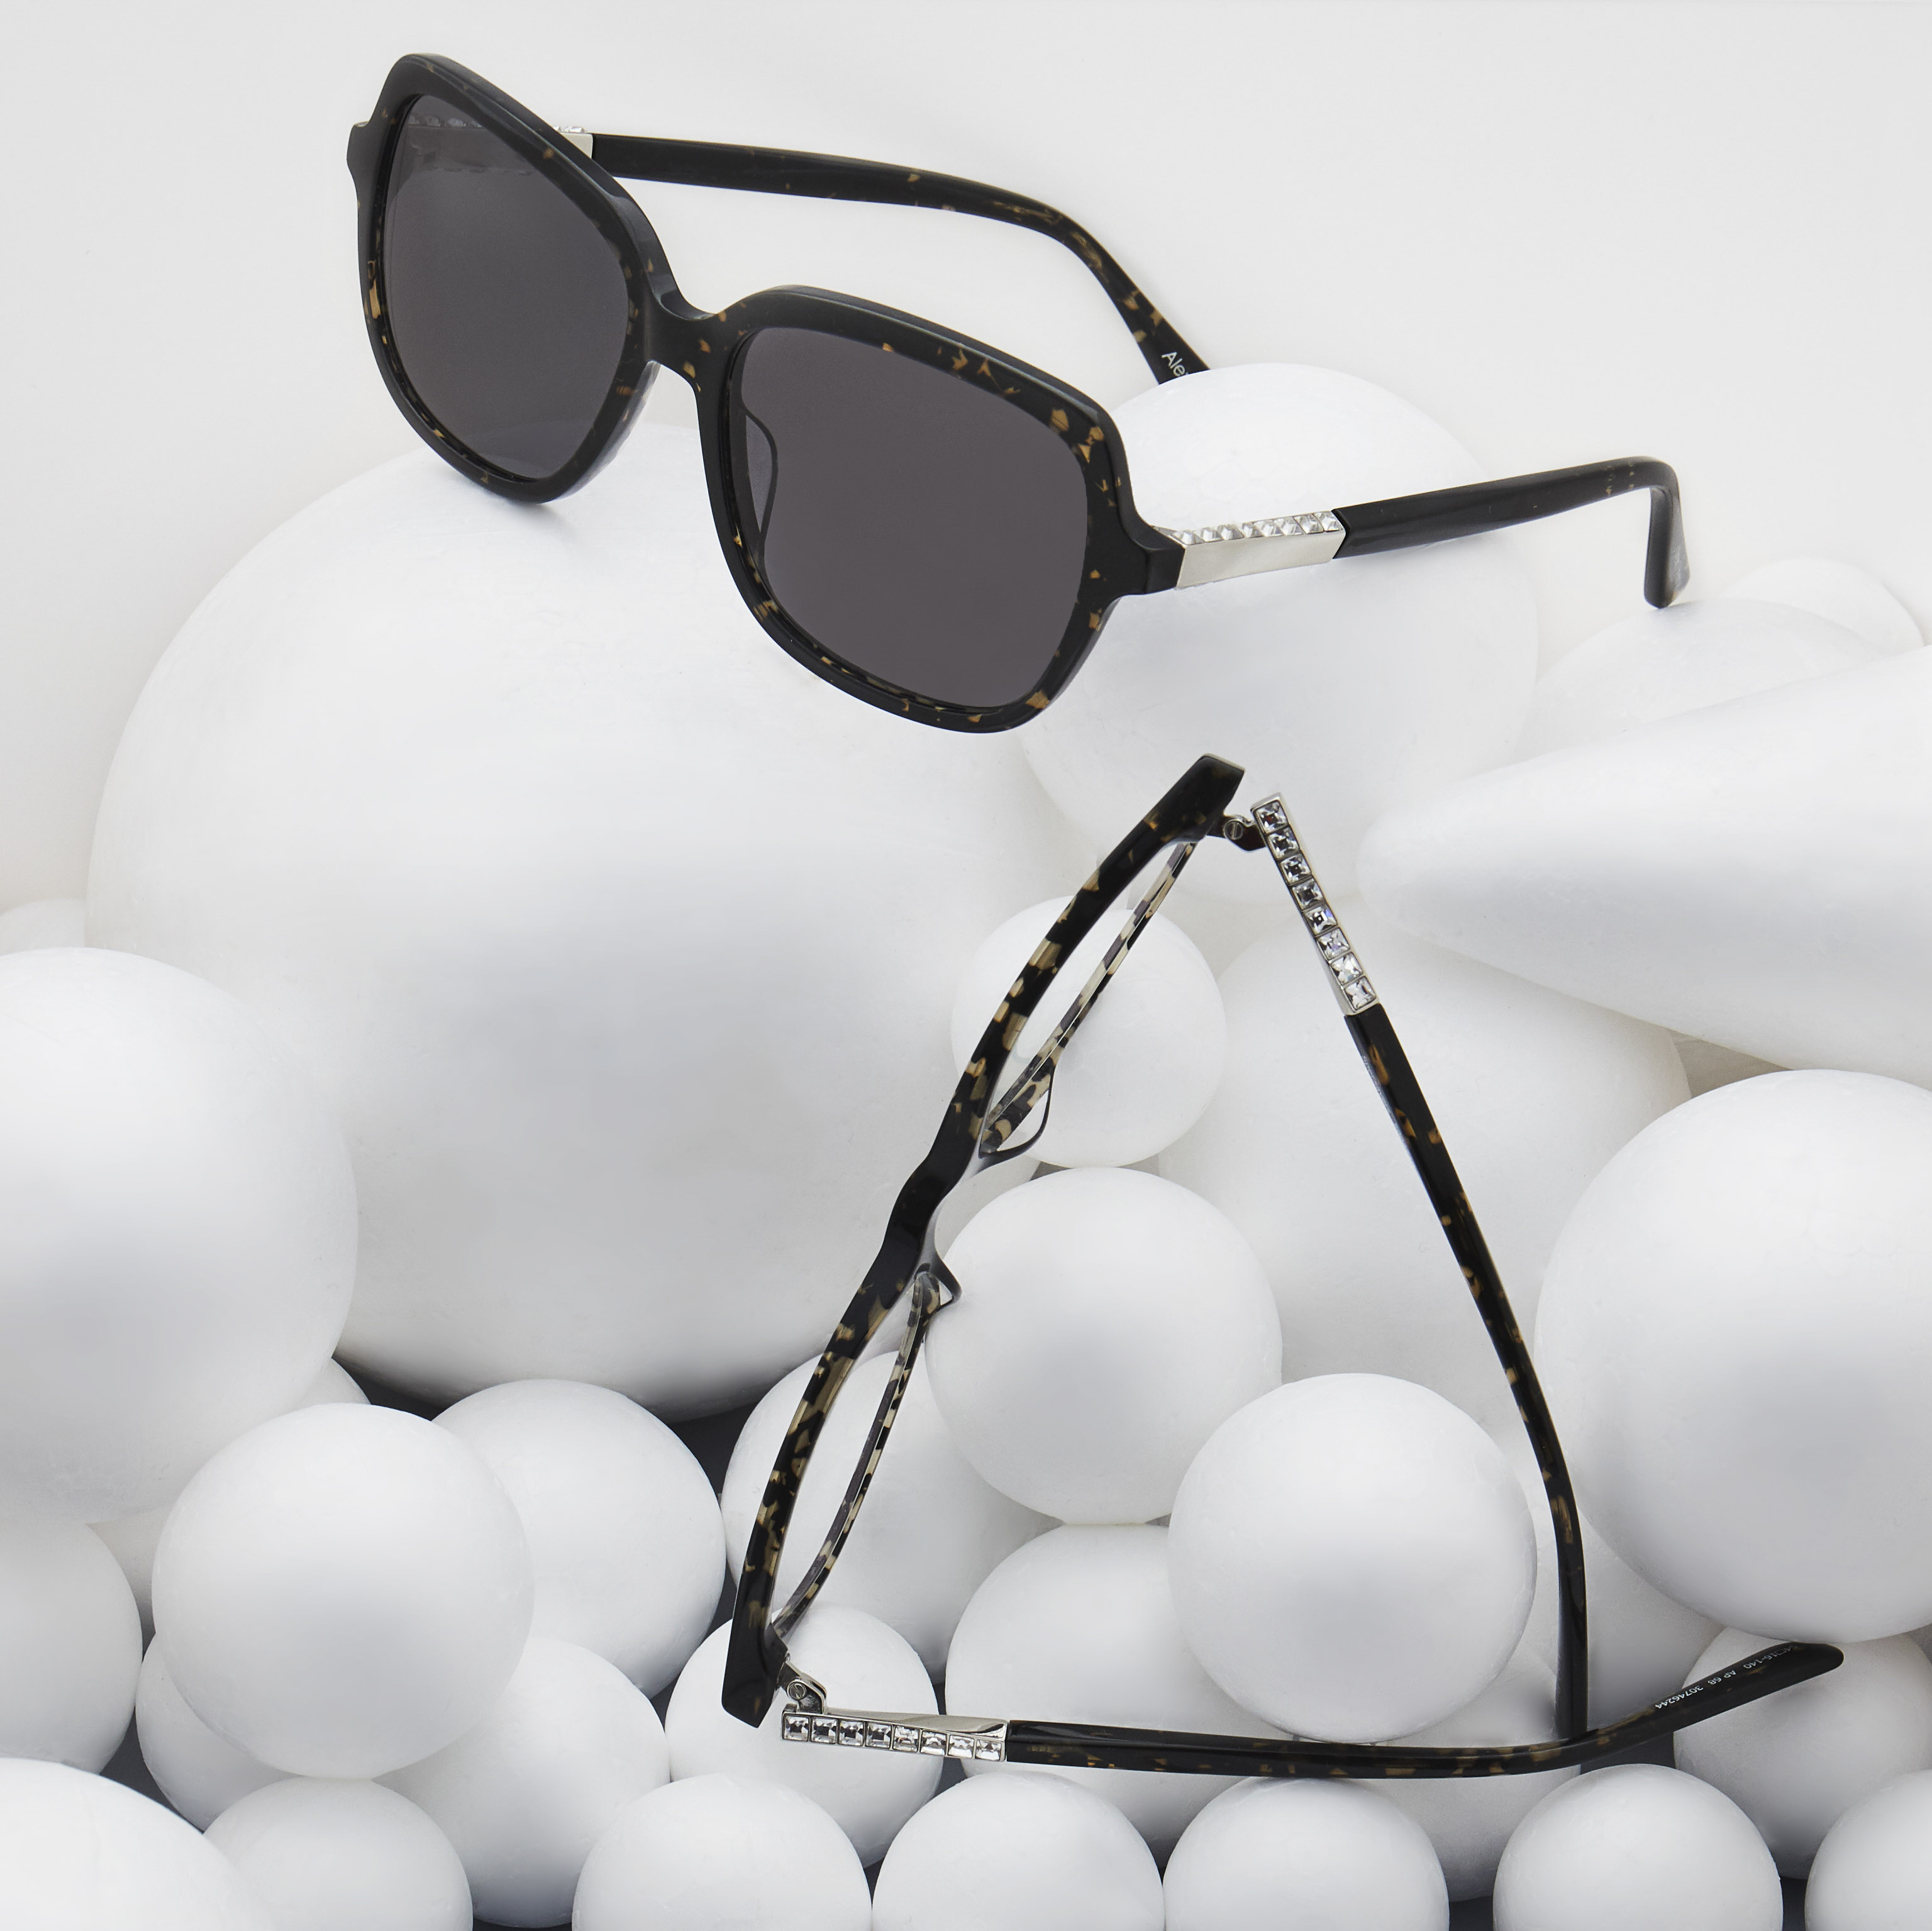 Alex Perry S Exclusive New Eyewear Apparel